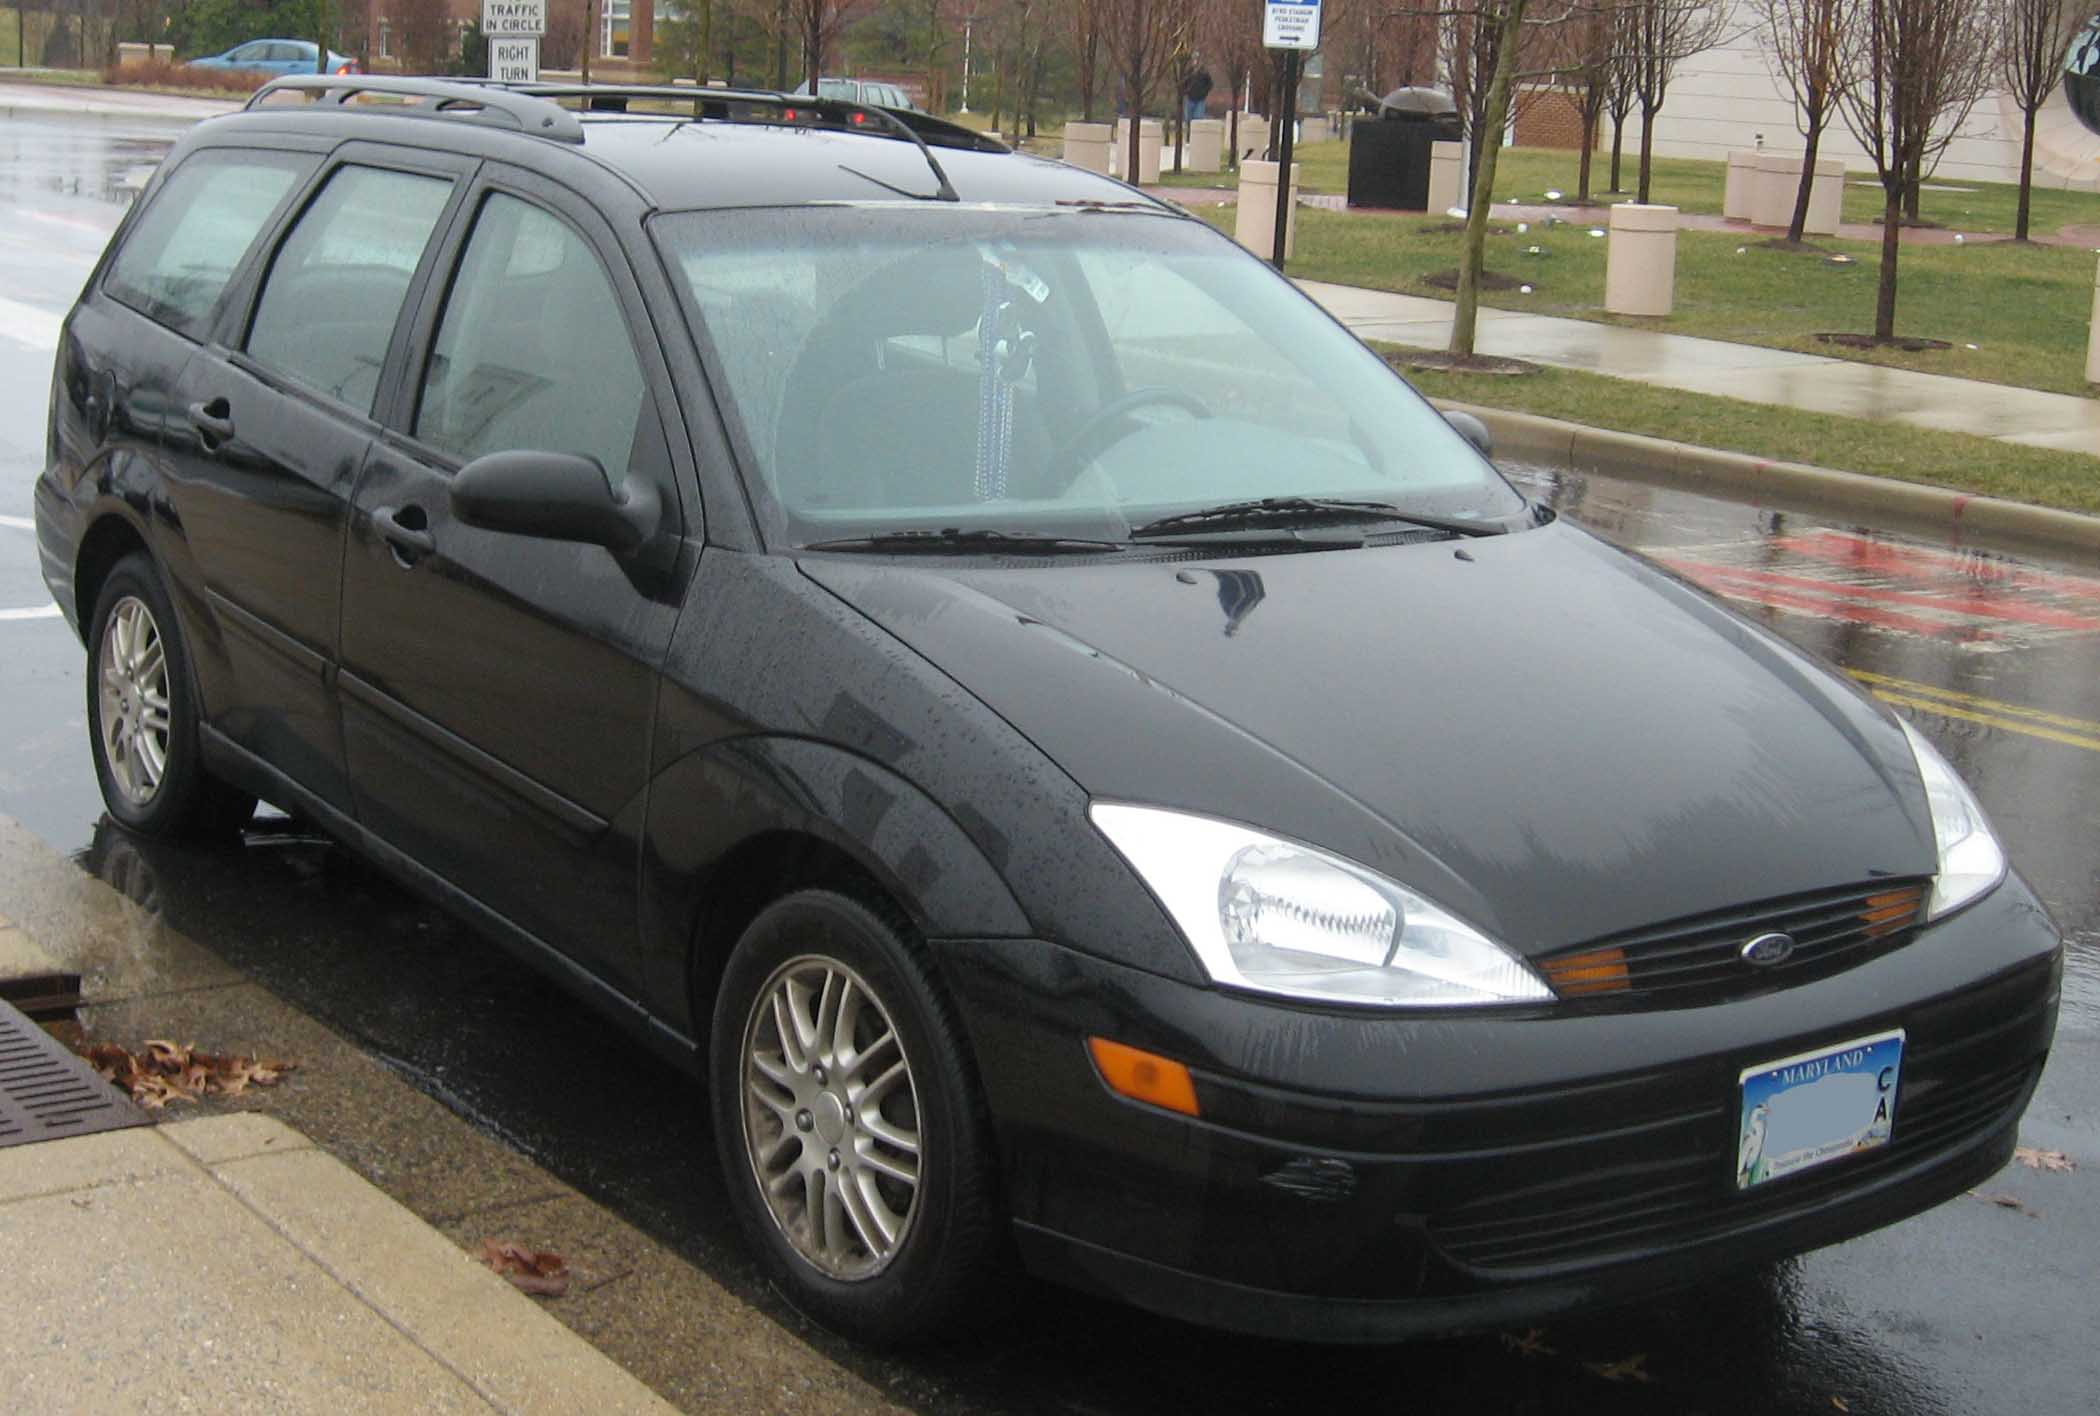 College Station Ford >> File:00-04 Ford Focus SE wagon front.jpg - Wikimedia Commons